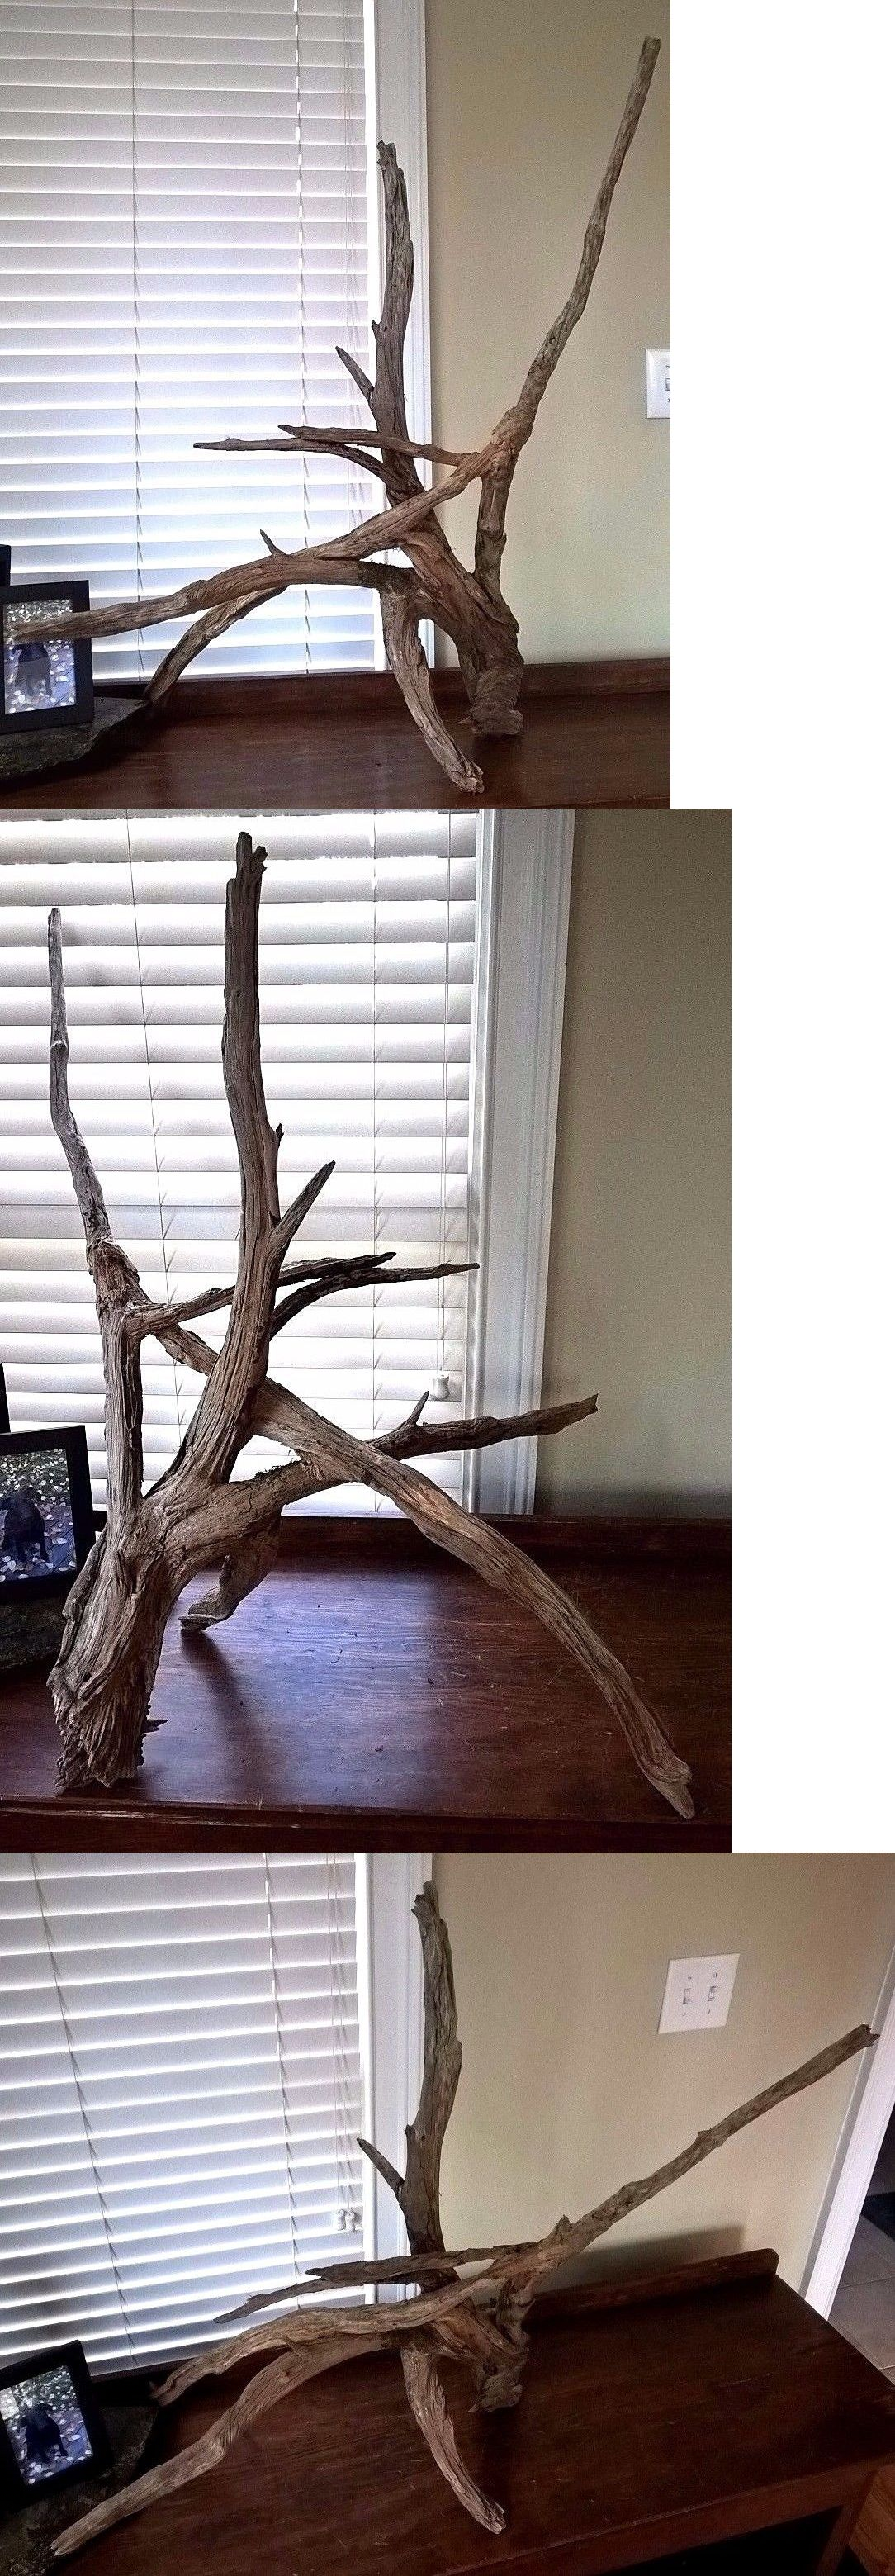 Decorations 66789 Extra Large Floor Standing Driftwood Rustic Home Decor Sculpture Art 674